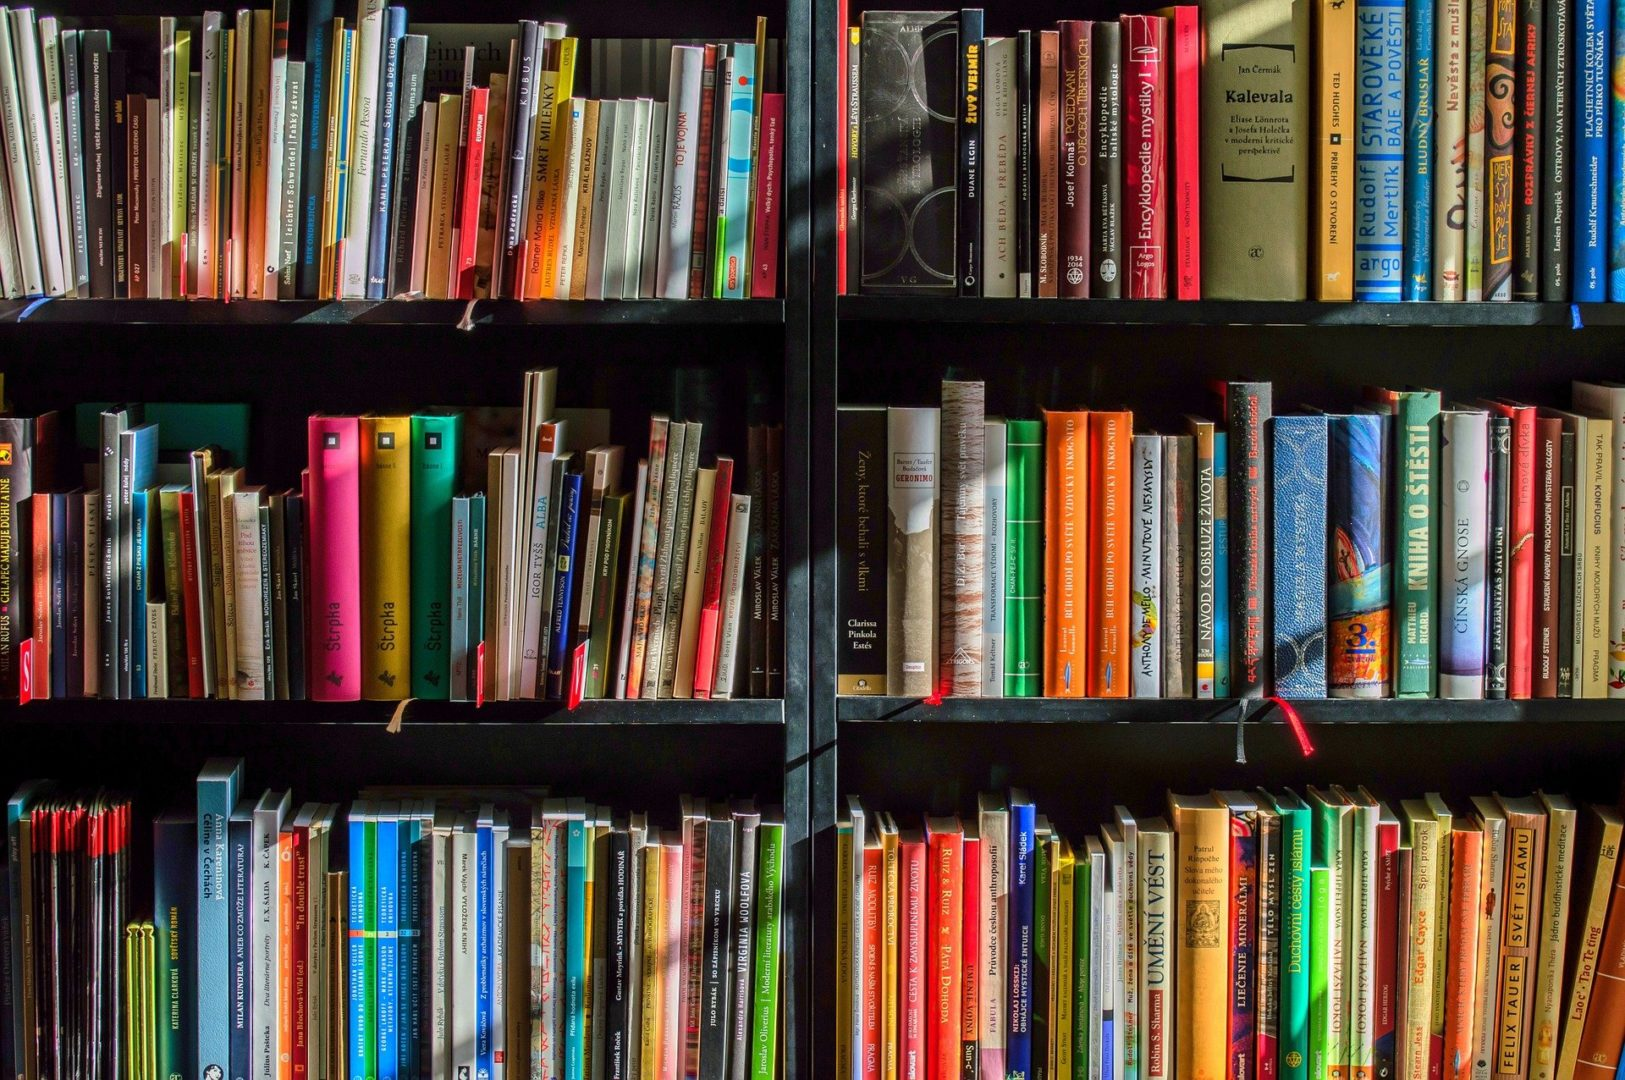 A colourful collection of books on shelves